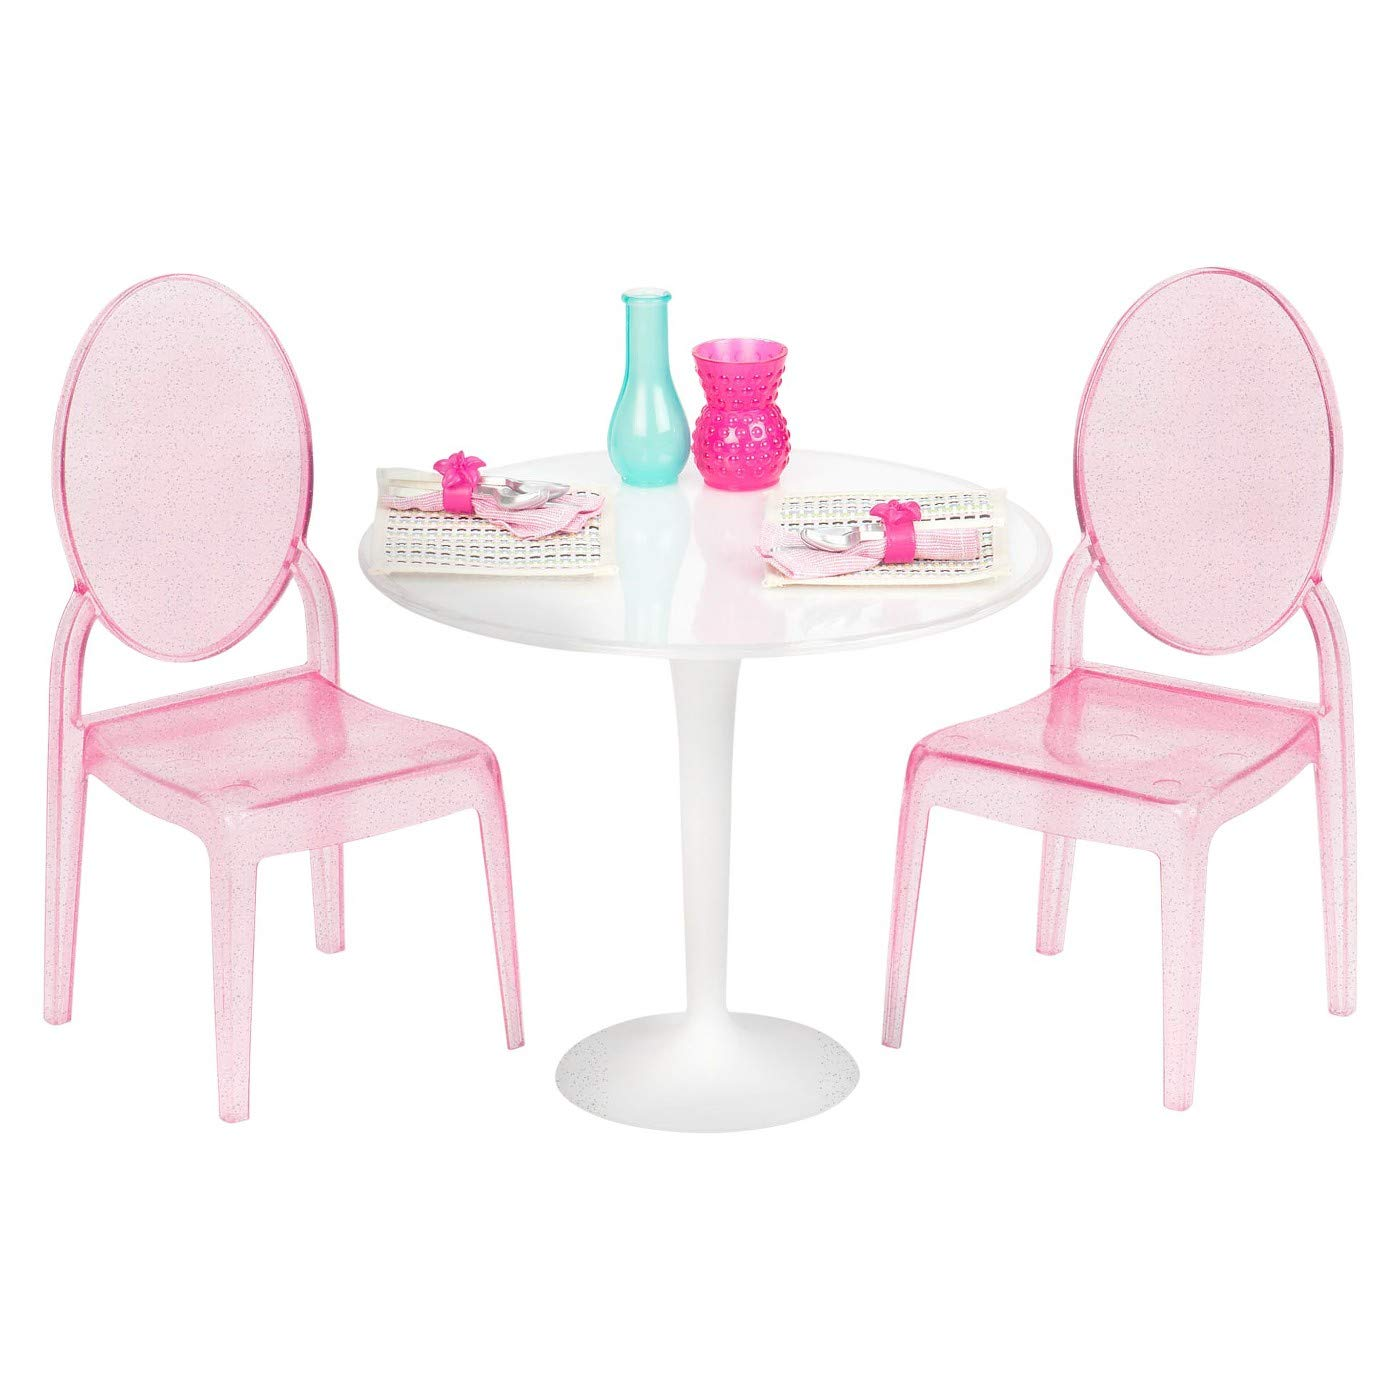 Our Generation Table & Chairs Home Girls in/Outdoor Play Garden Accessory Set